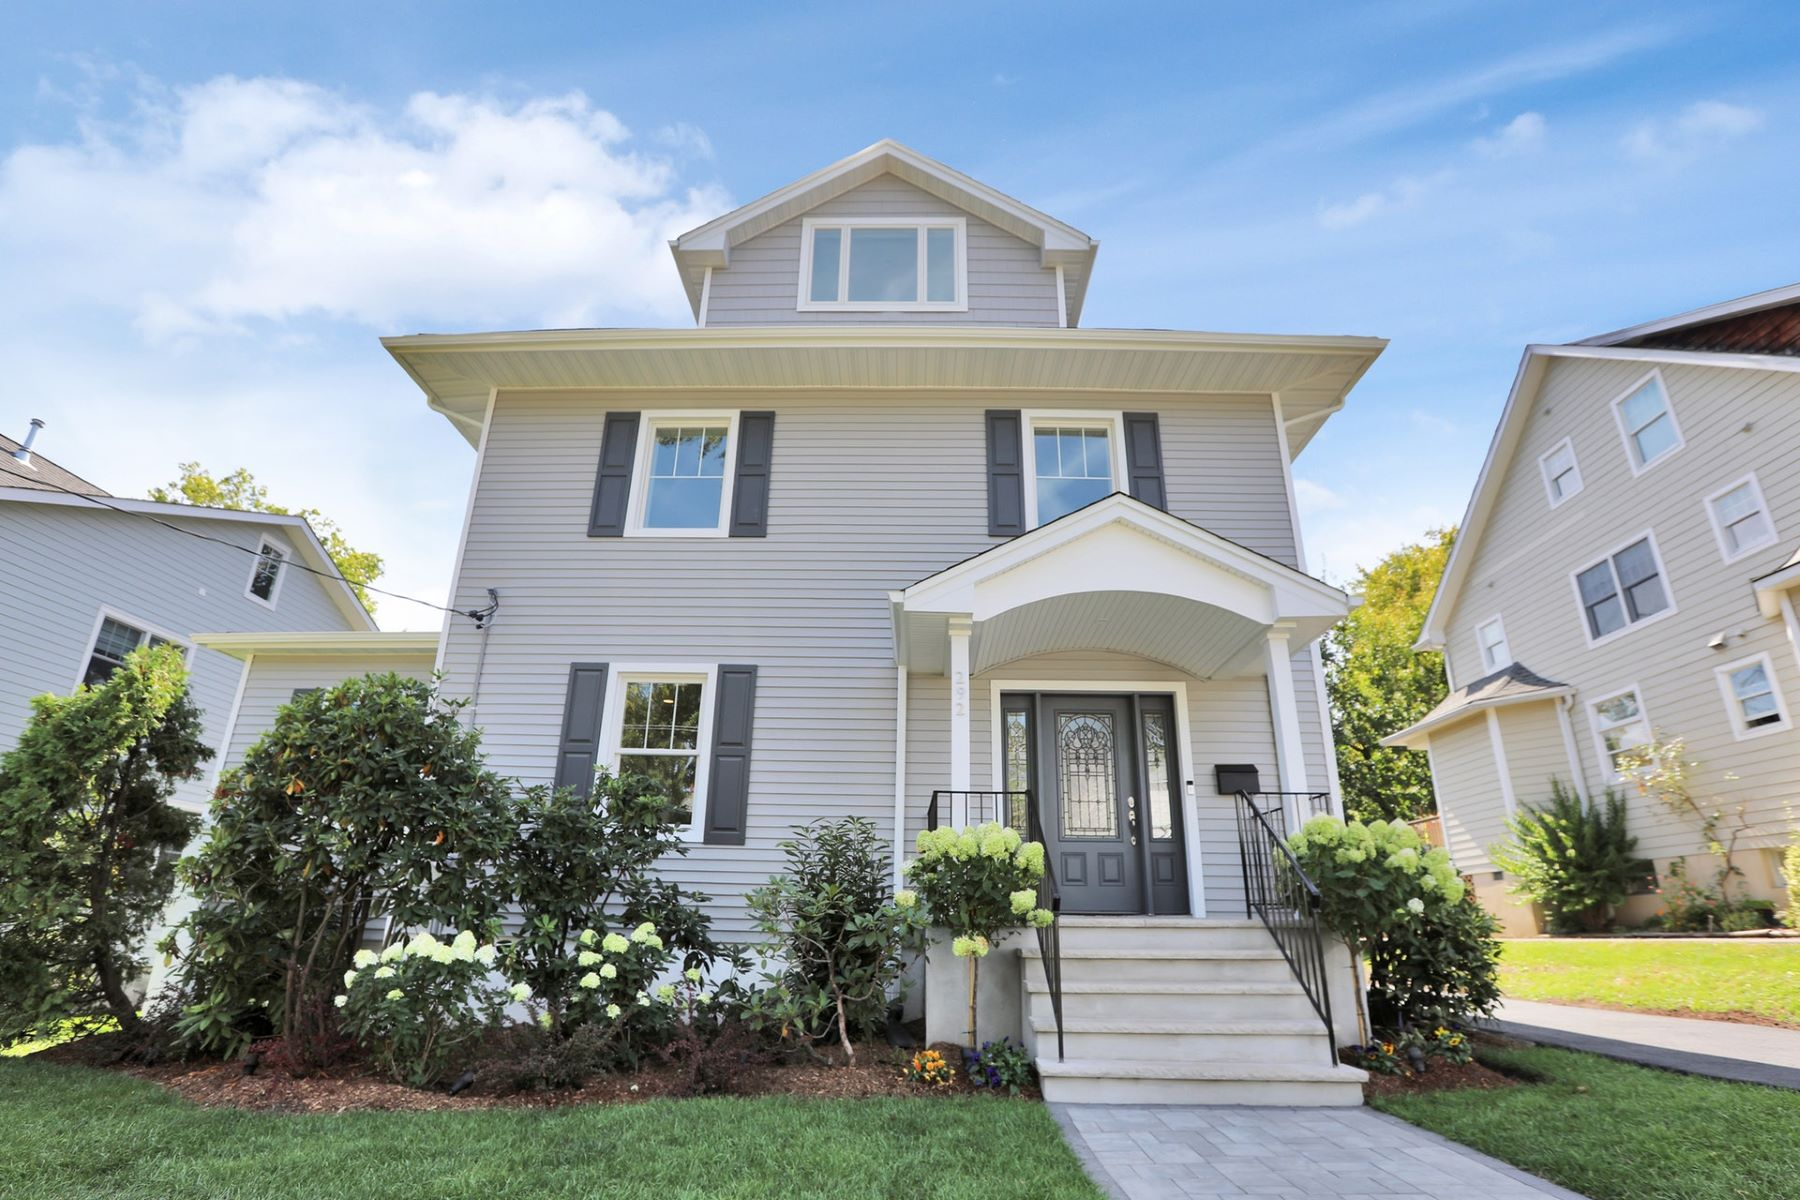 Single Family Homes for Sale at Welcome Home 292 Ogden Ave Teaneck, New Jersey 07666 United States